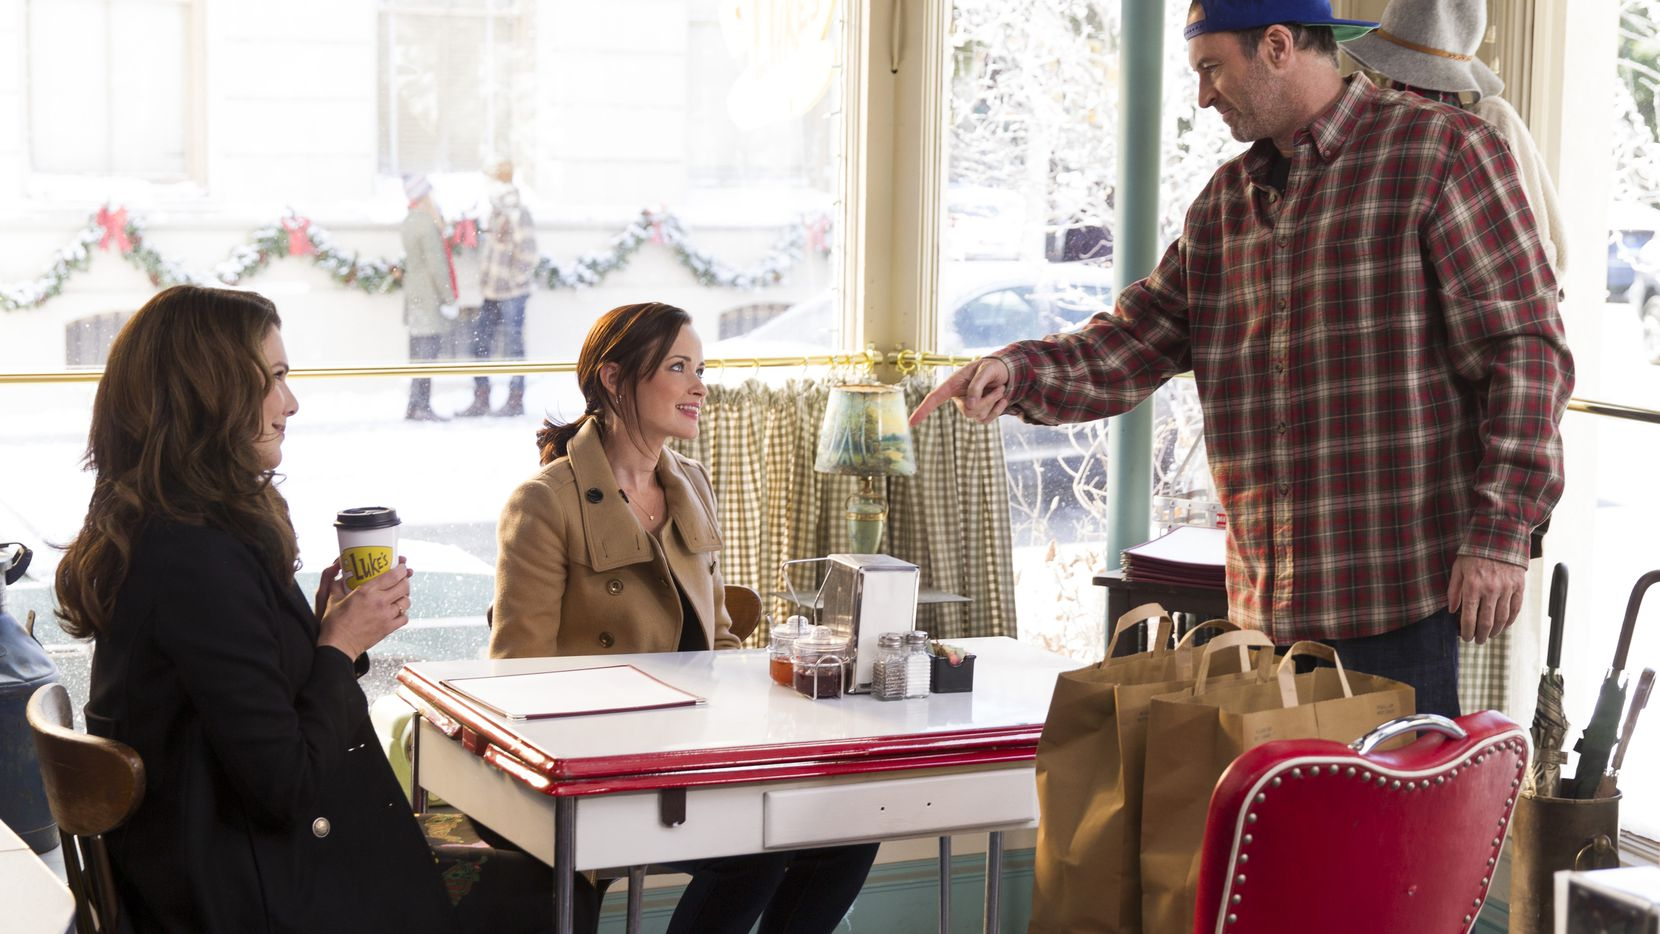 """Lauren Graham, Alexis Bledel and Scott Patterson play as Lorelai, Rory and Luke in a scene from Netflix's """"Gilmore Girls: A Year in the Life,"""" a 2016 miniseries which served as a sort of sequel to the popular 2000s TV show."""